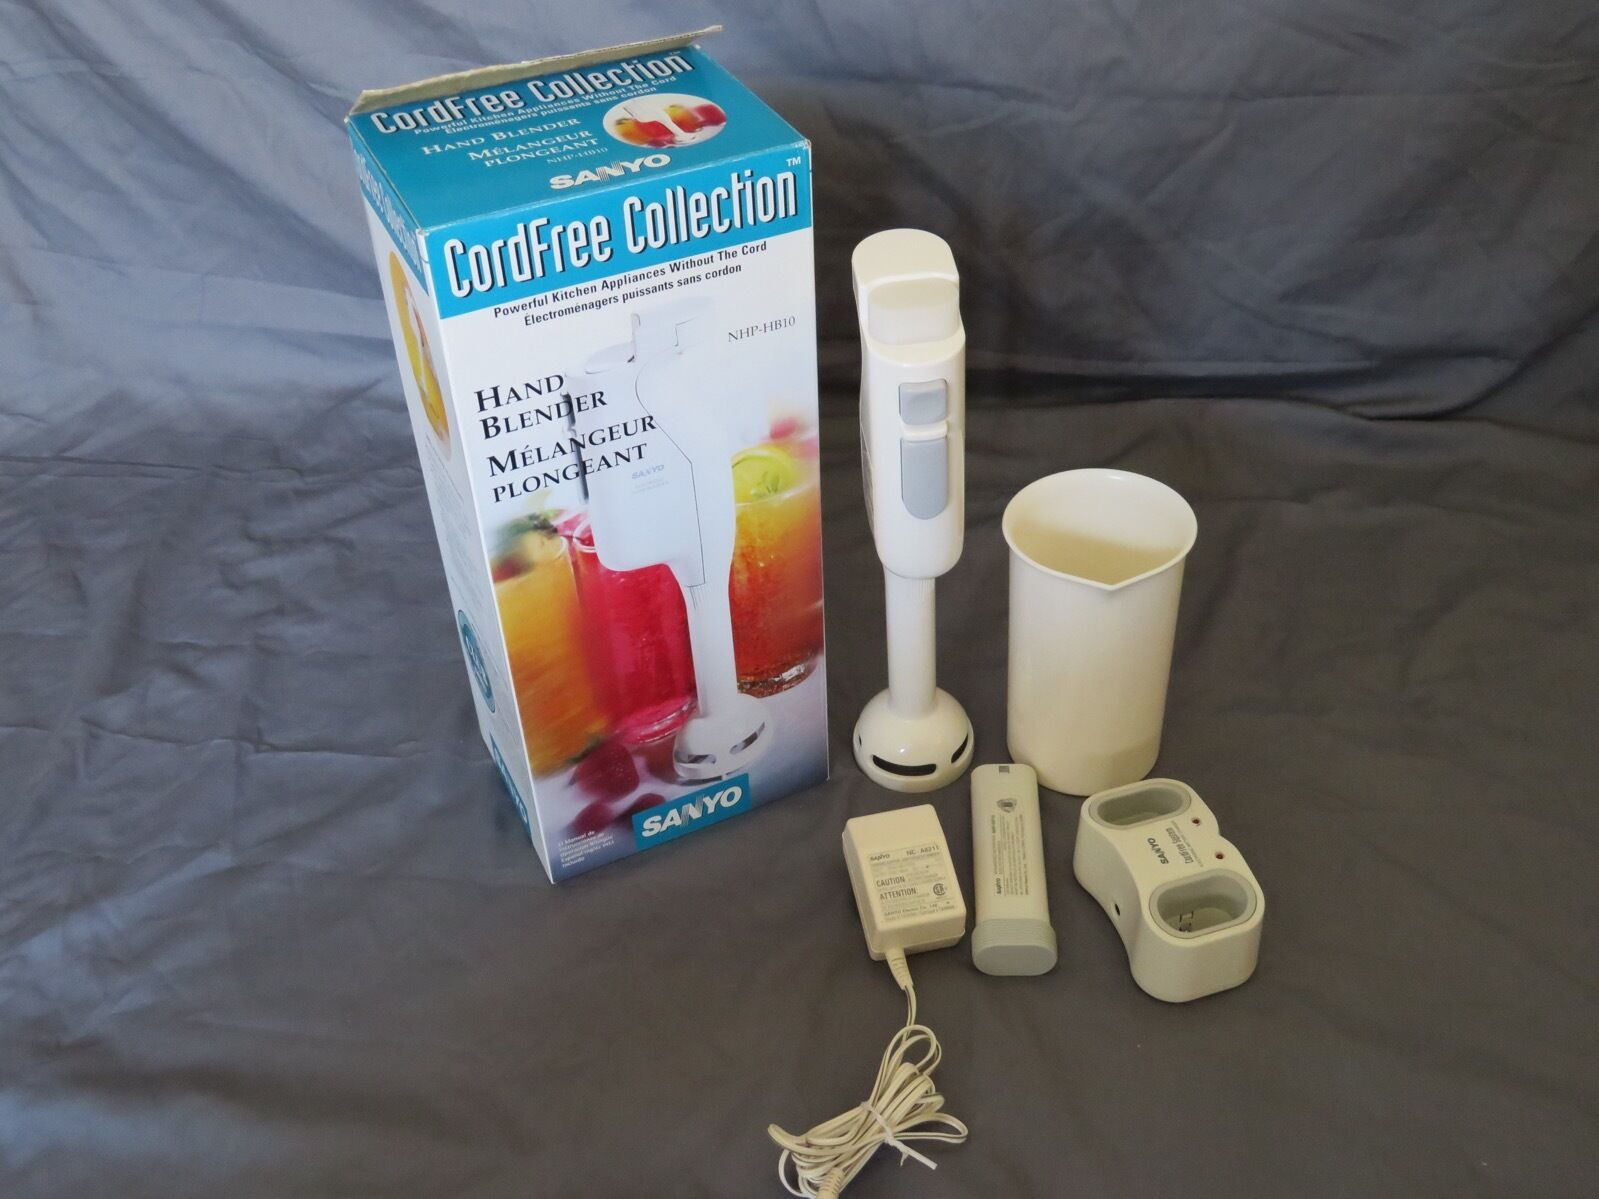 Sanyo Cord libre Collection Blanc Handheld immersion Blender mixeur NHP-HB10